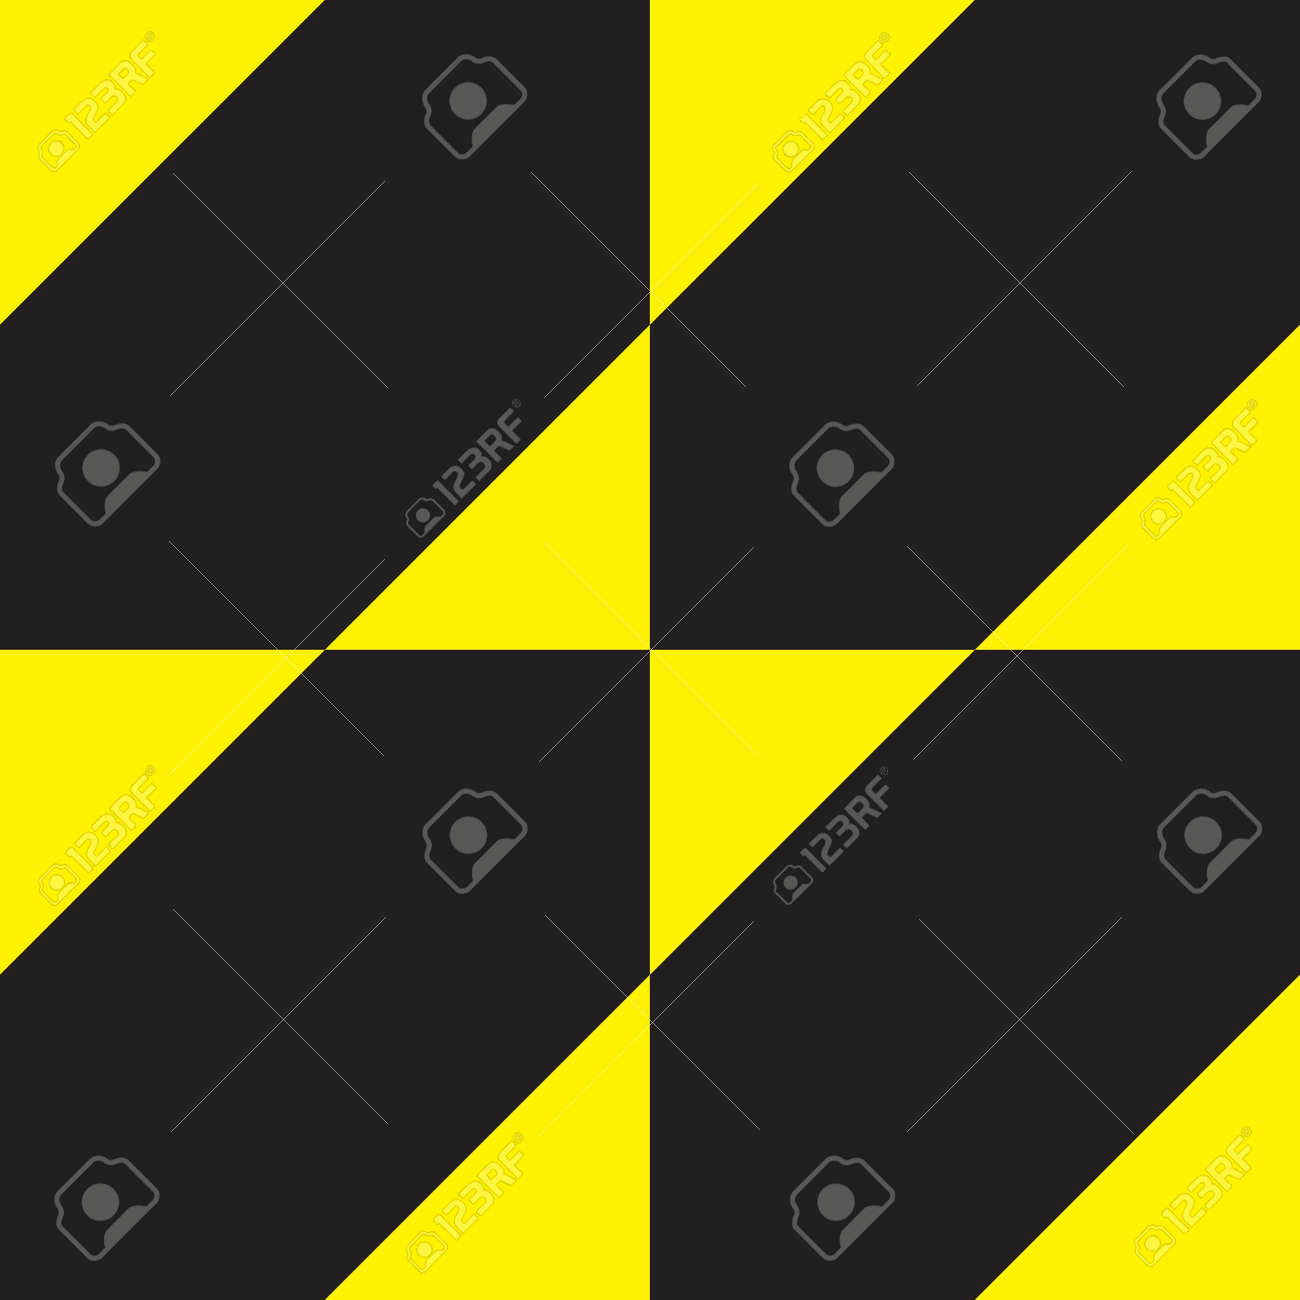 Yellow on black attention sign Stock Vector - 15994468